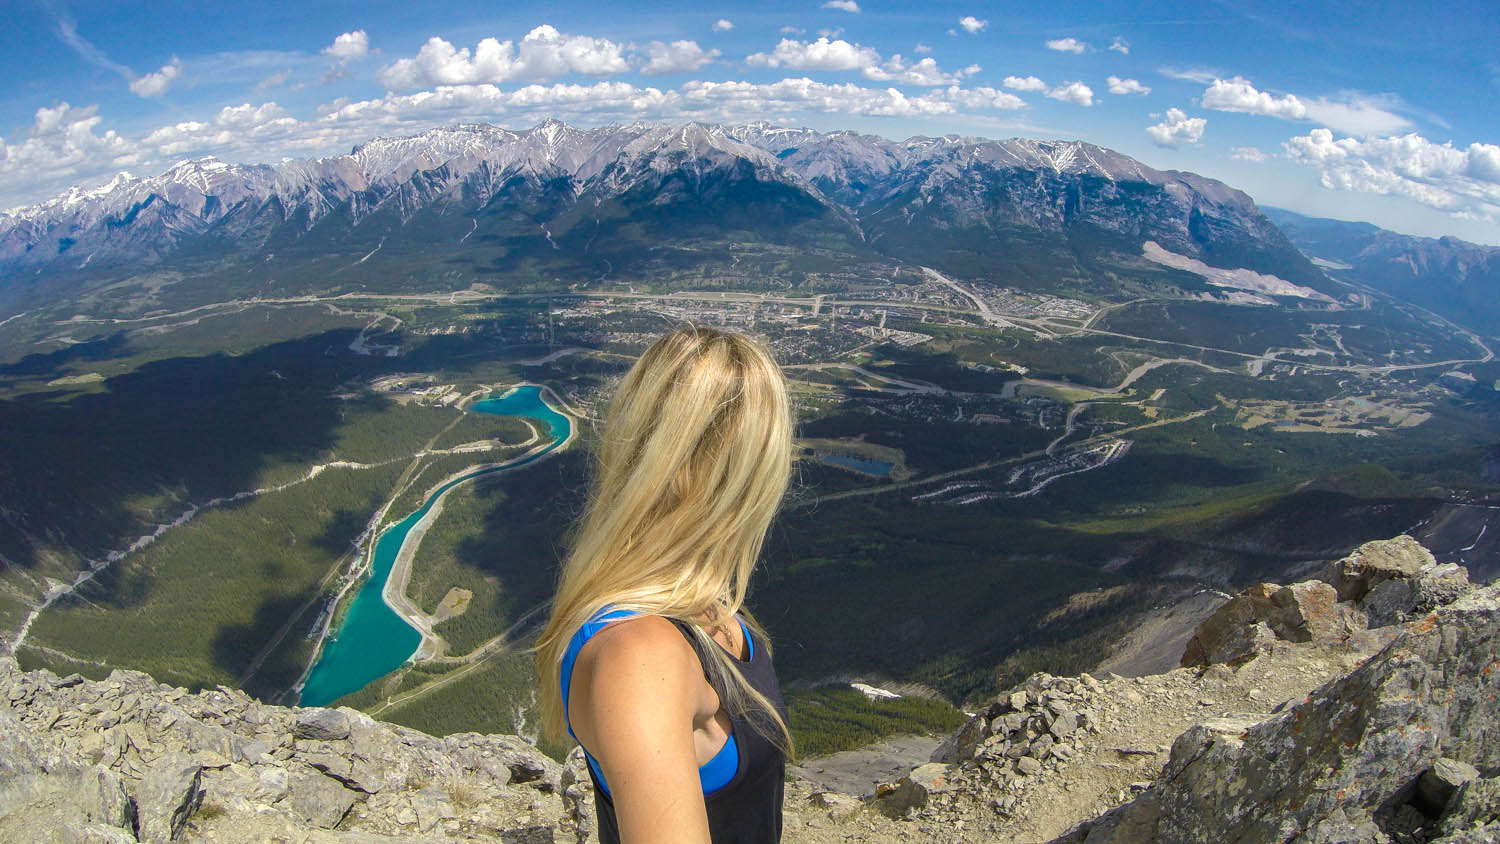 Lesley Murphy hiking in Banff, Canada